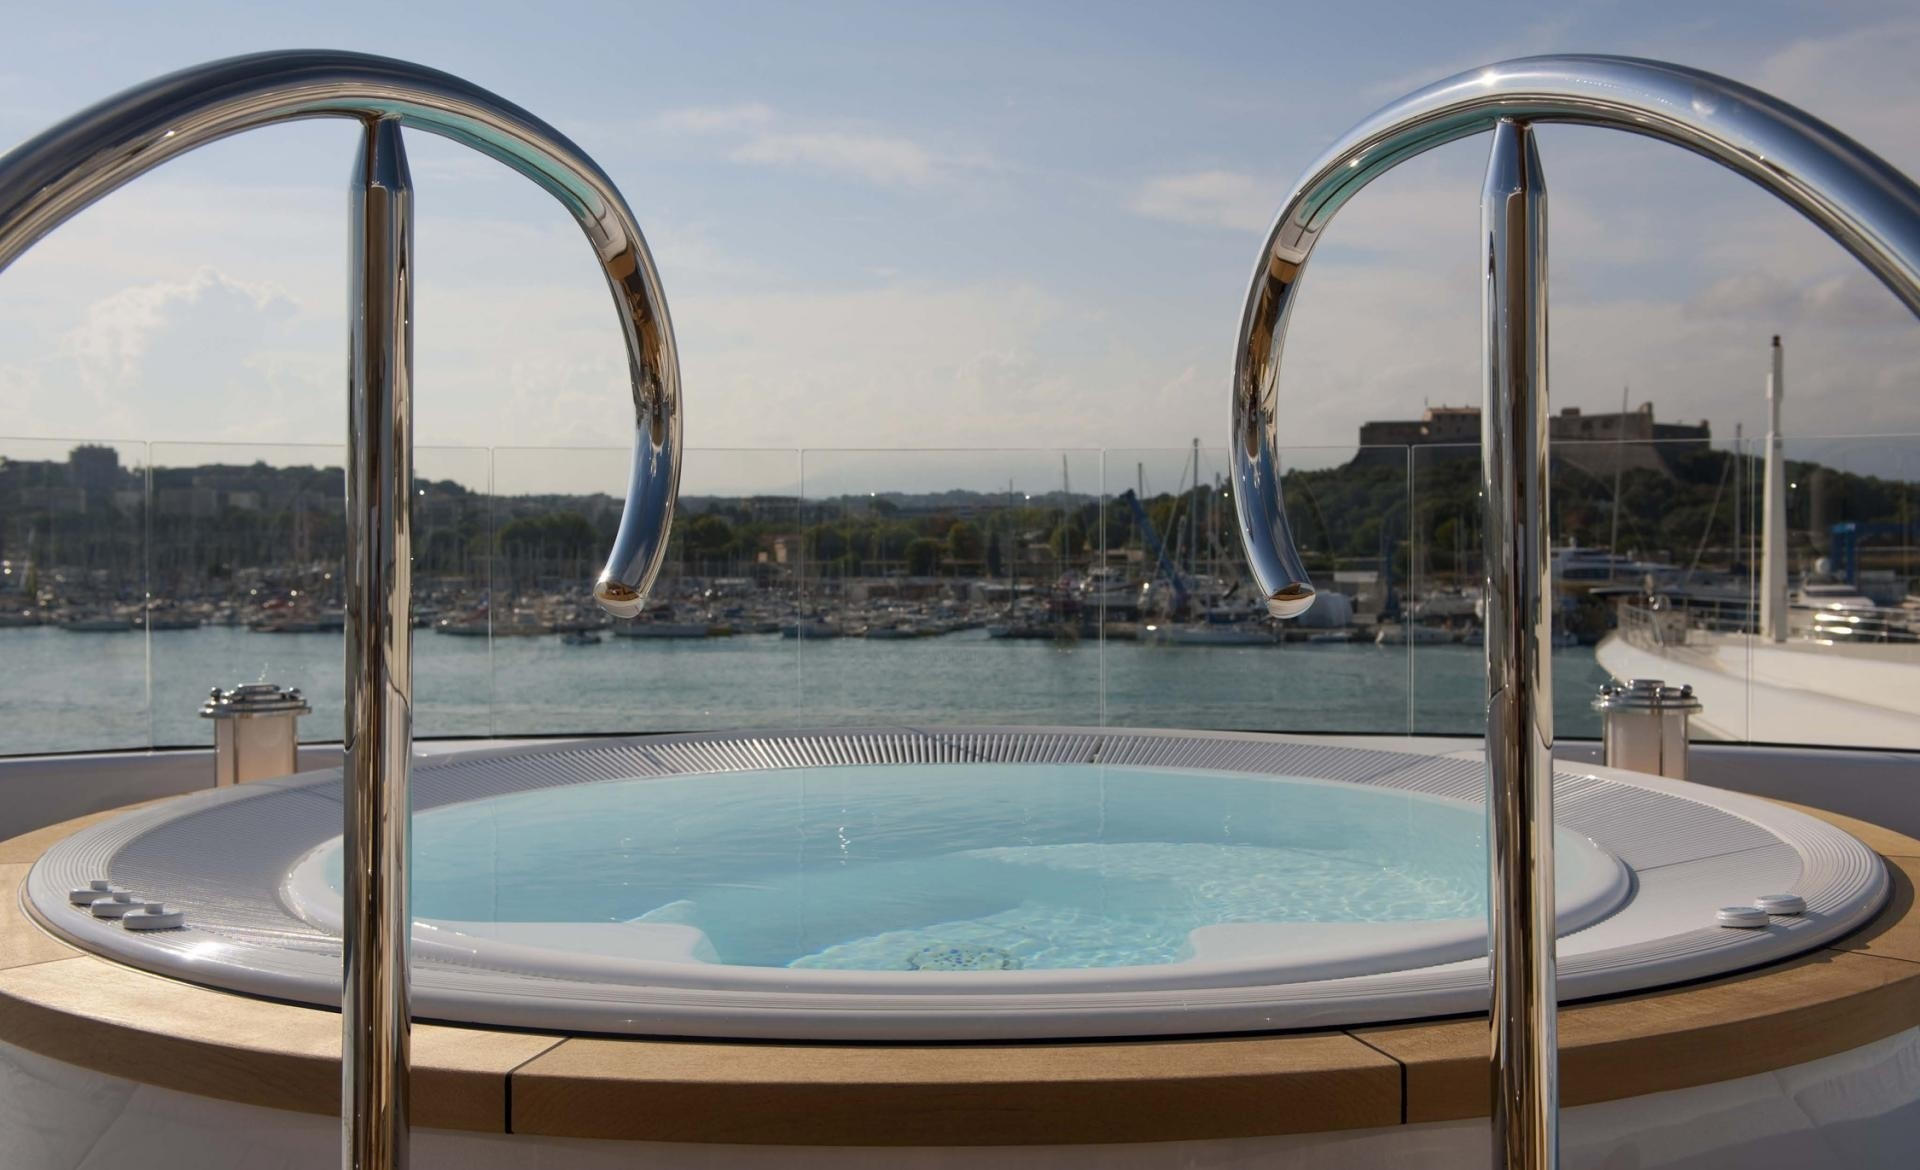 Jacuzzi Pool Details Yacht Huntress Lurssen Superyacht Charterworld Luxury